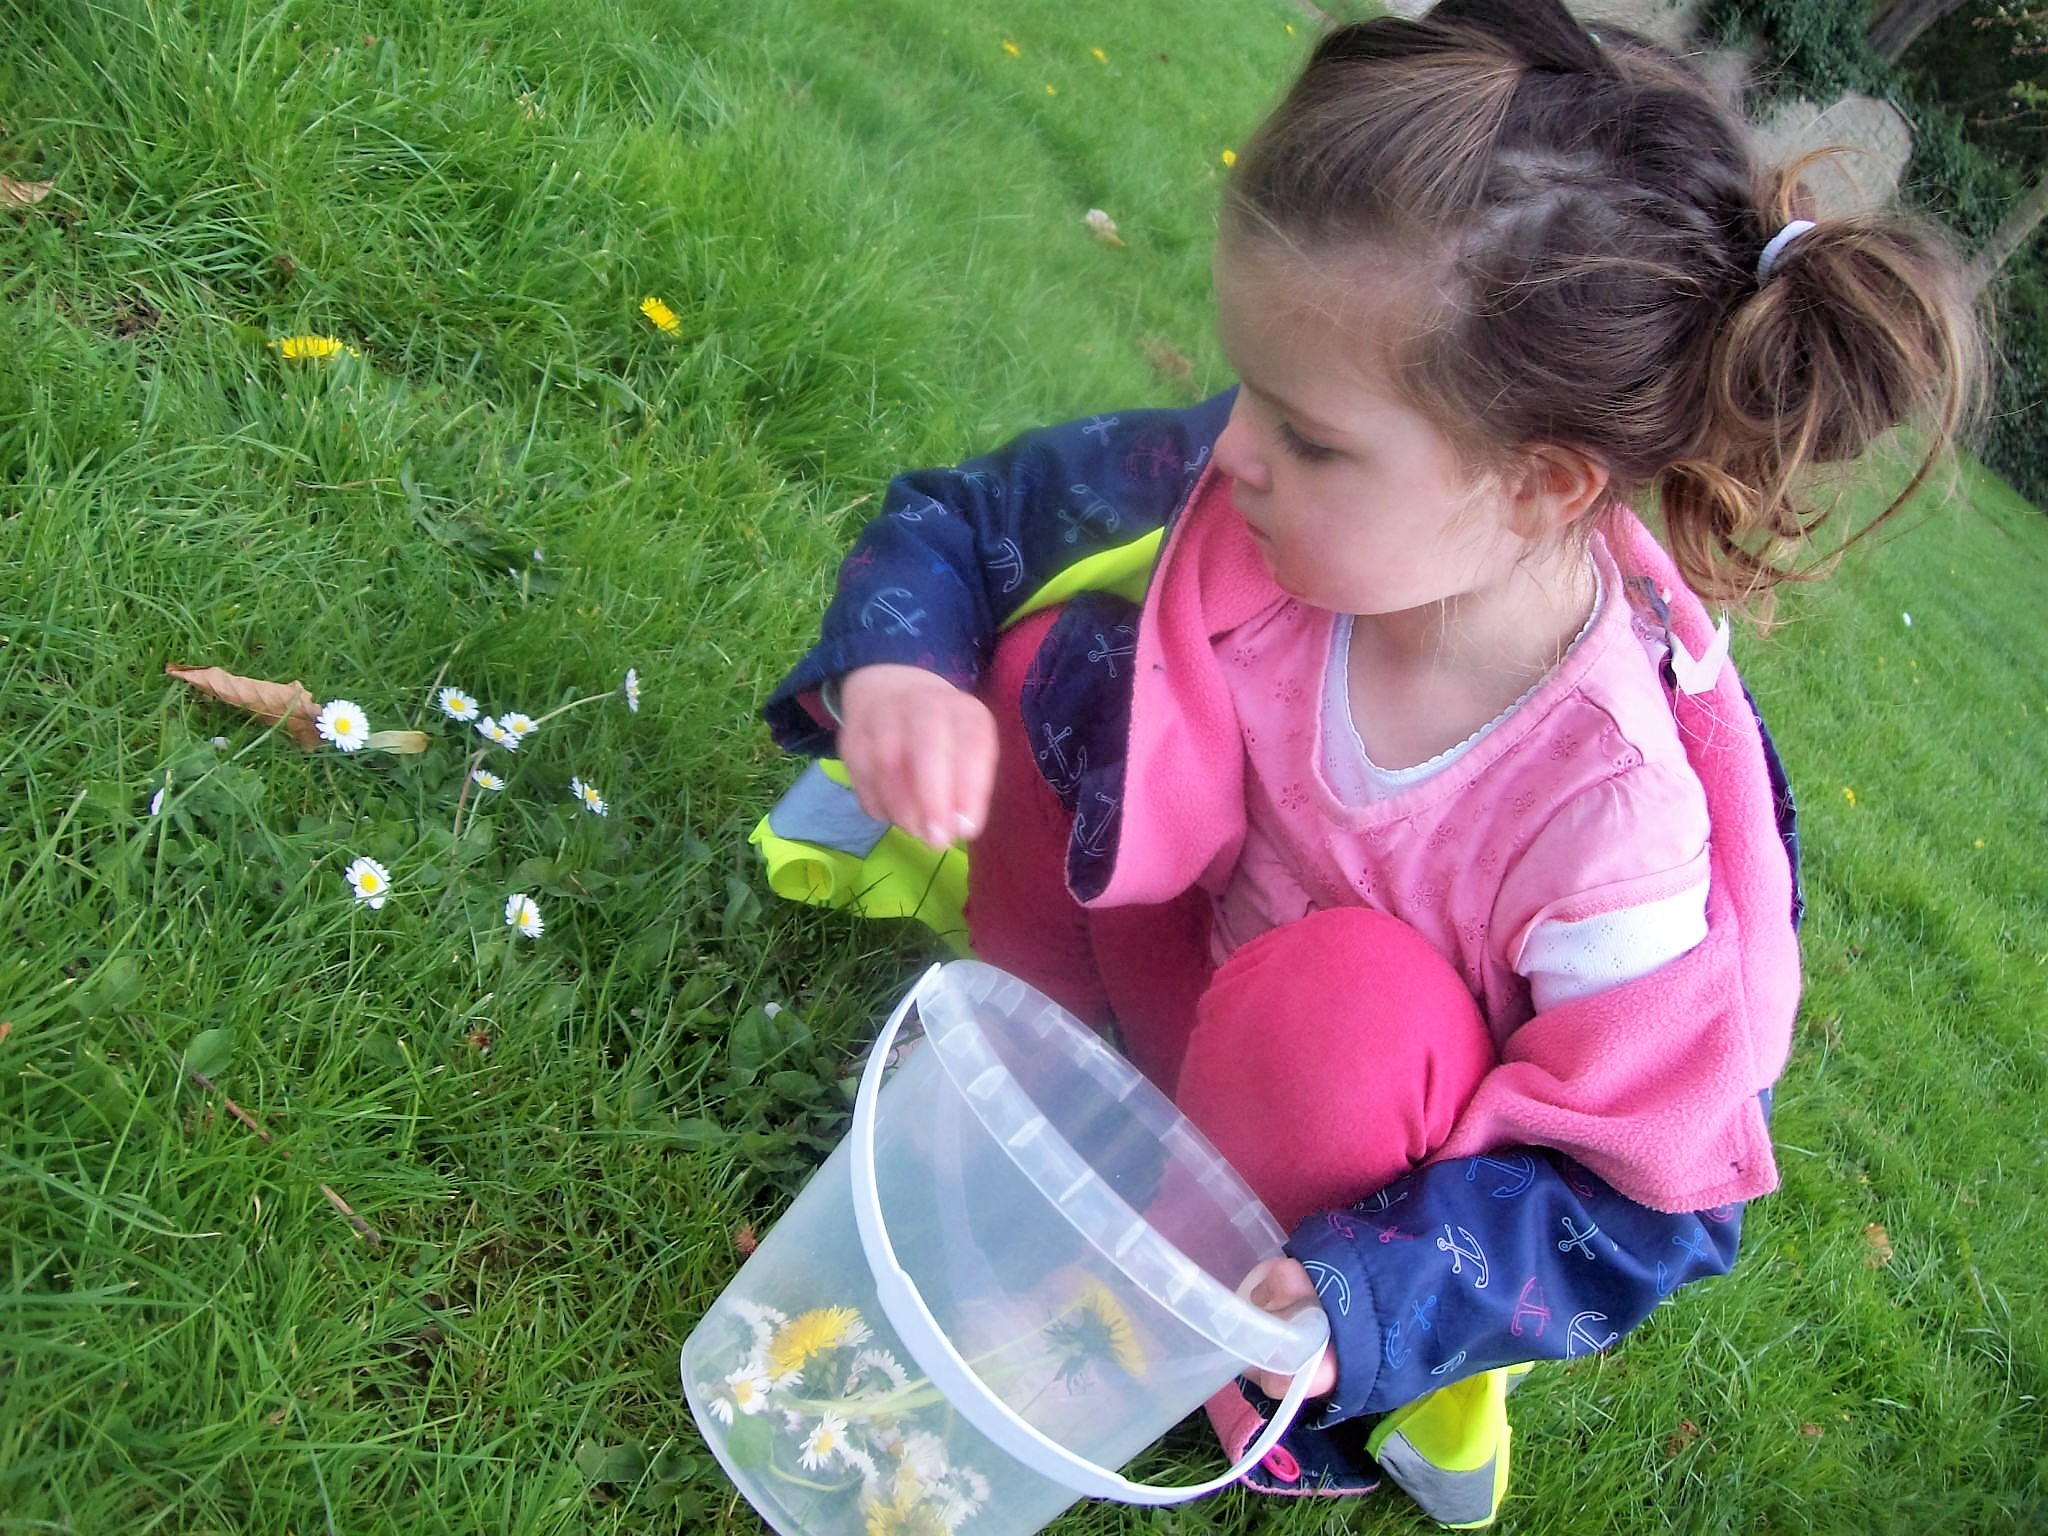 Making daisy chains, April 2017